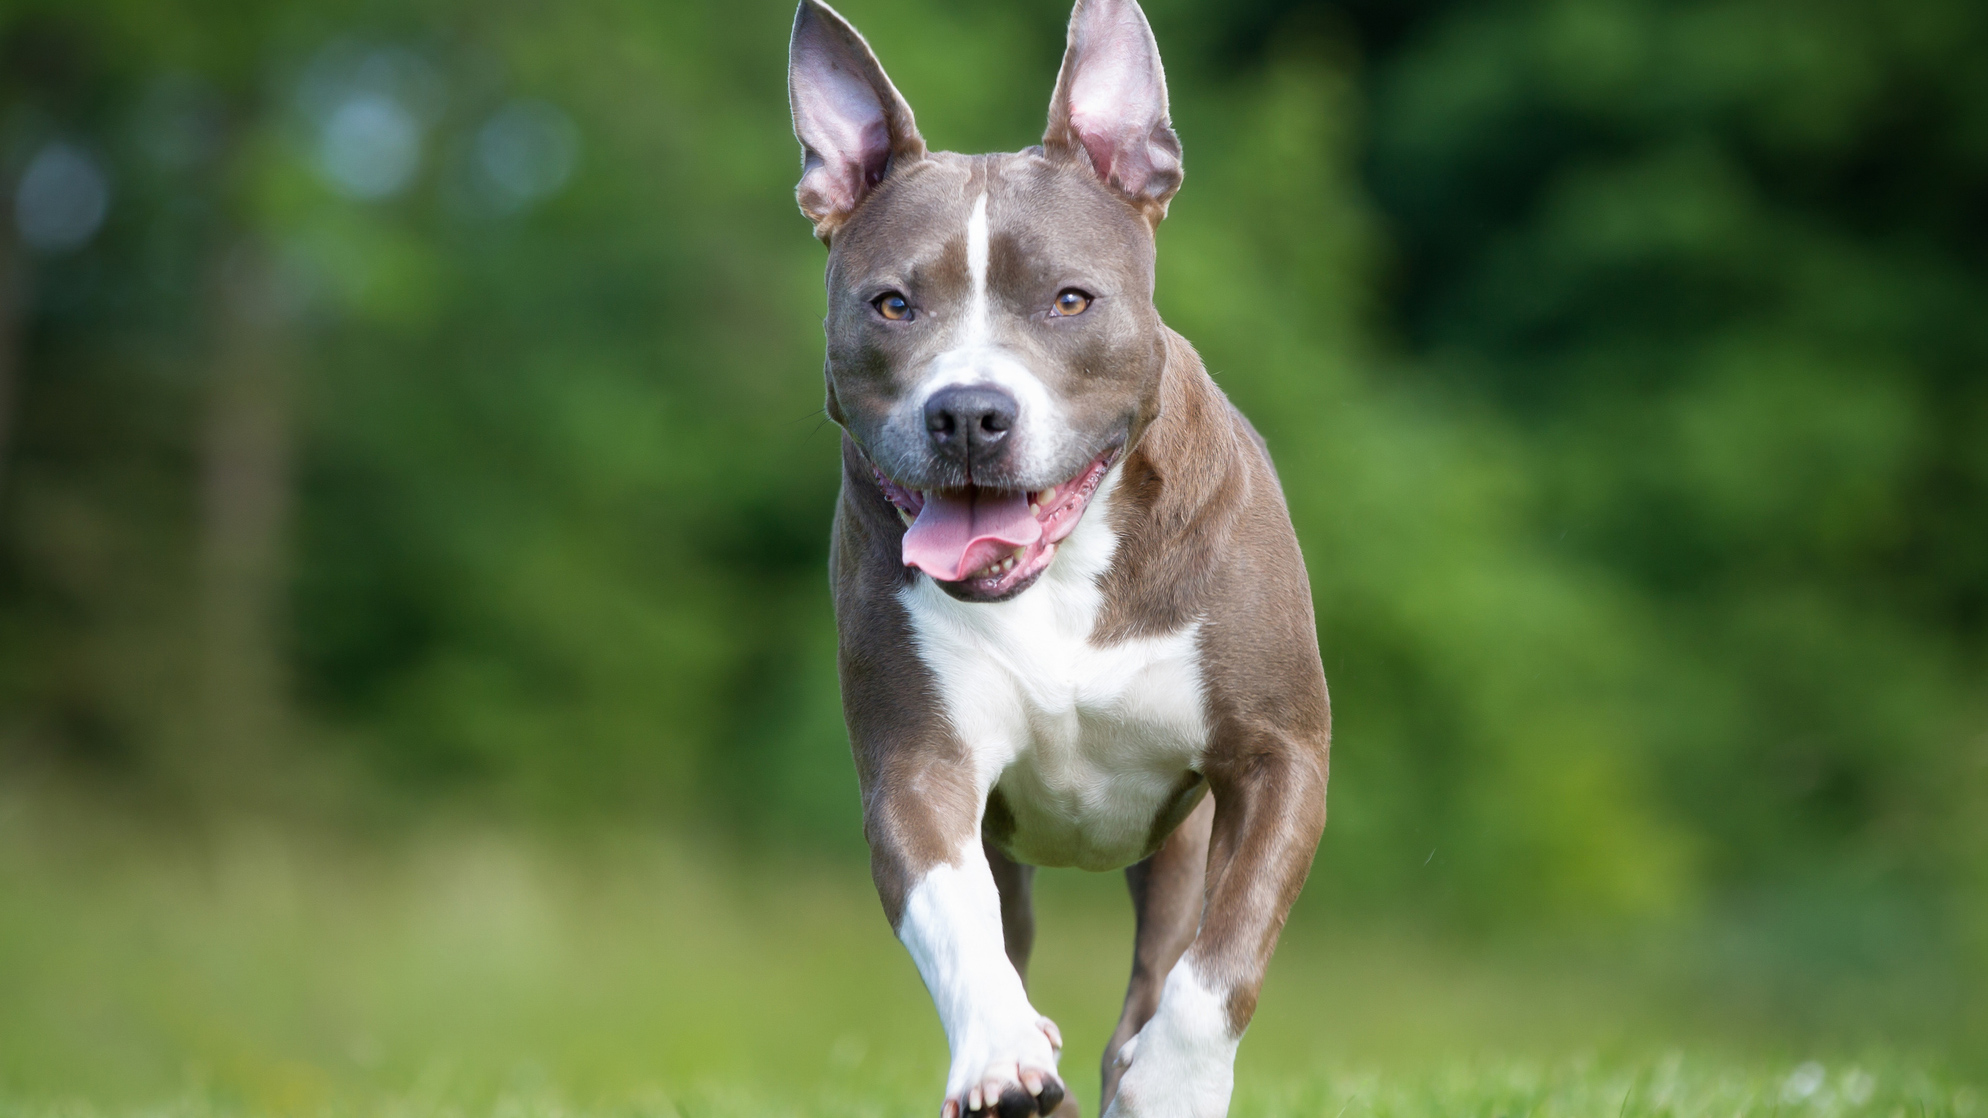 causes and effects of animal abuse